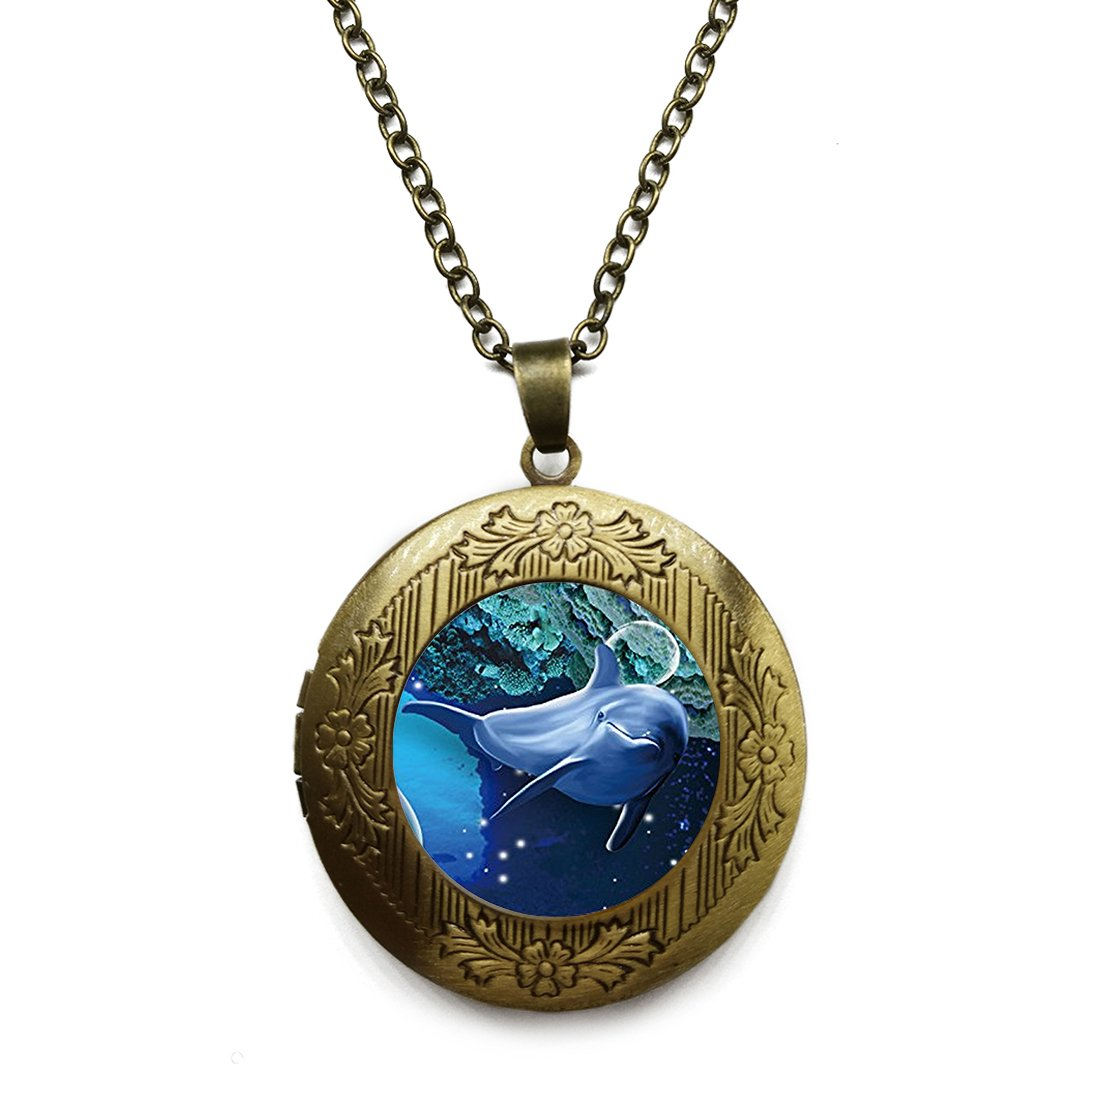 Vintage Bronze Tone Locket Picture Pendant Necklace Friendly Beautiful Dolphin Seabed Included Free Brass Chain Gifts Personalized